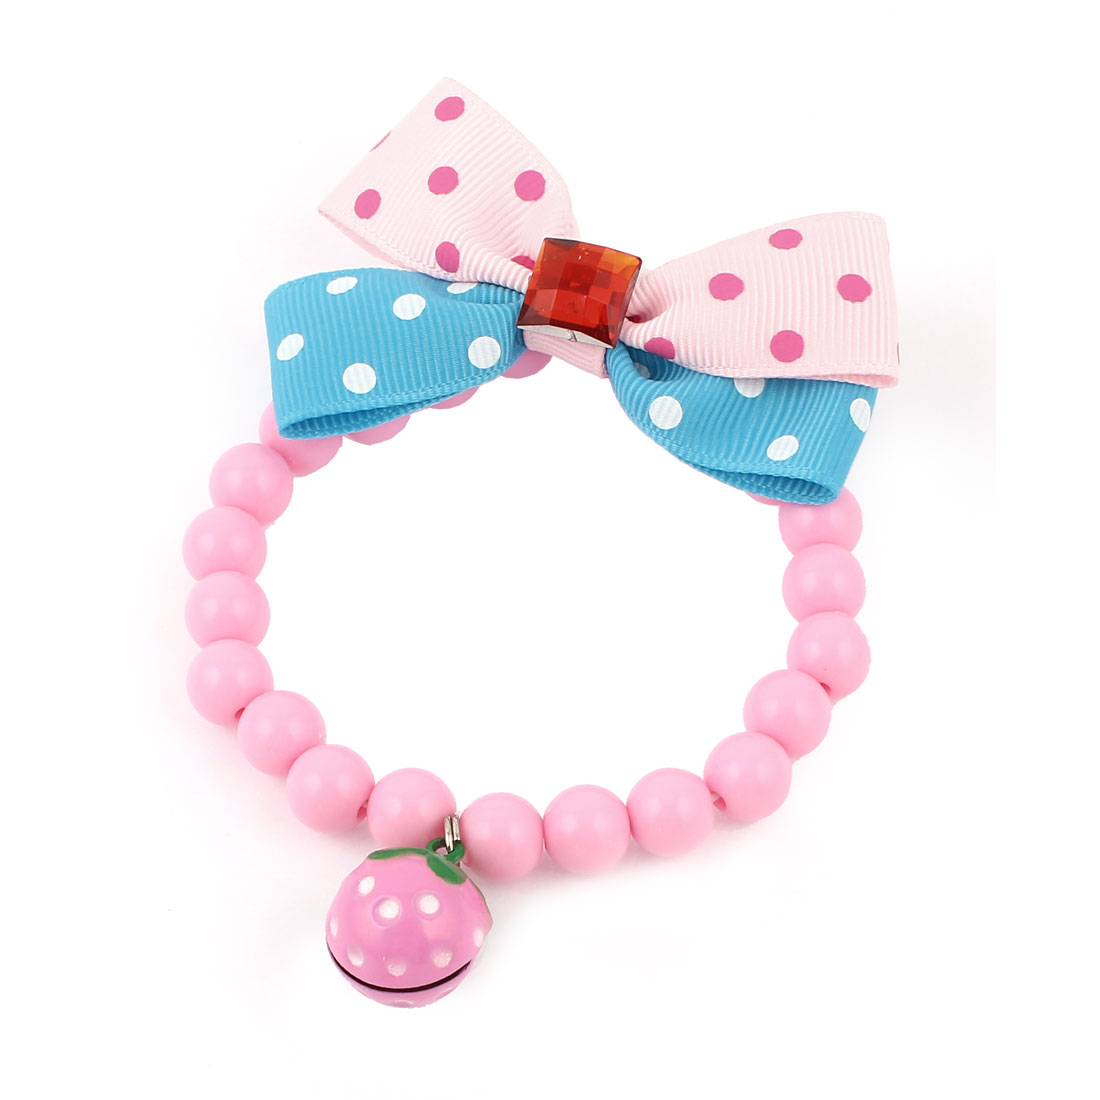 Metal Bell Pendant Bowtie Accent Pet Dog Plastic Beads Collar Necklace Pink Blue XS